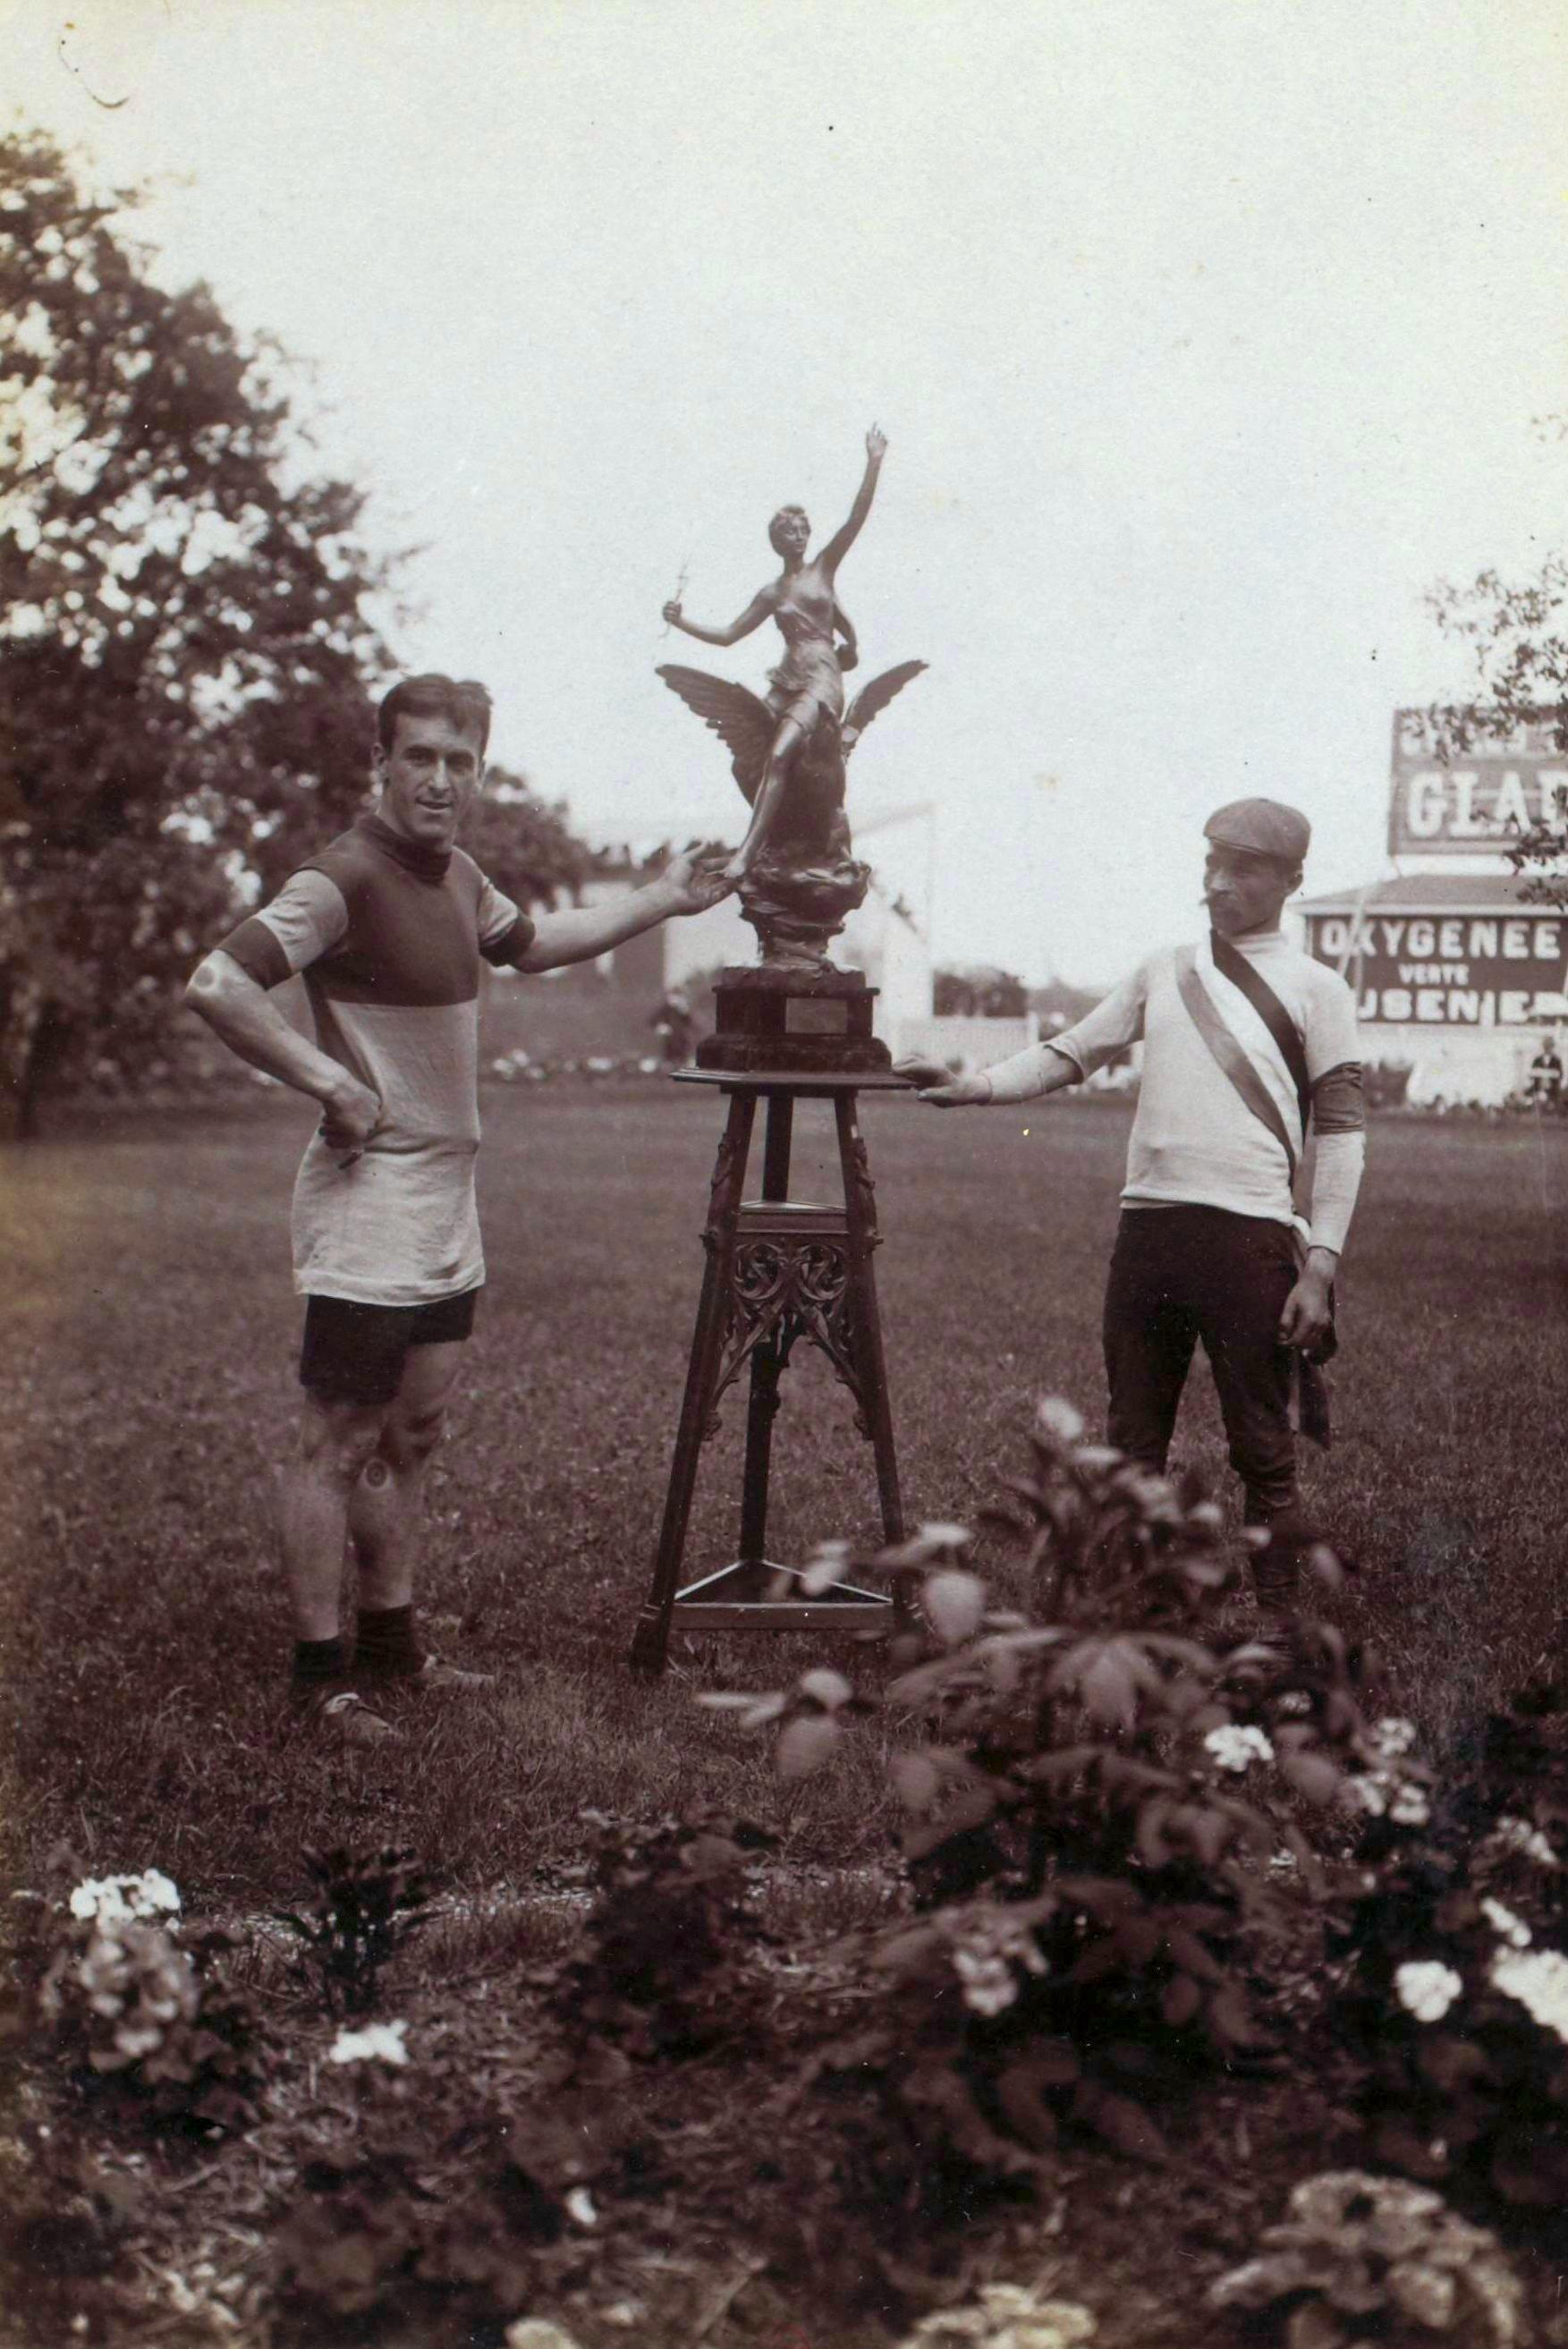 First Tour de France final victory trophy, 1903